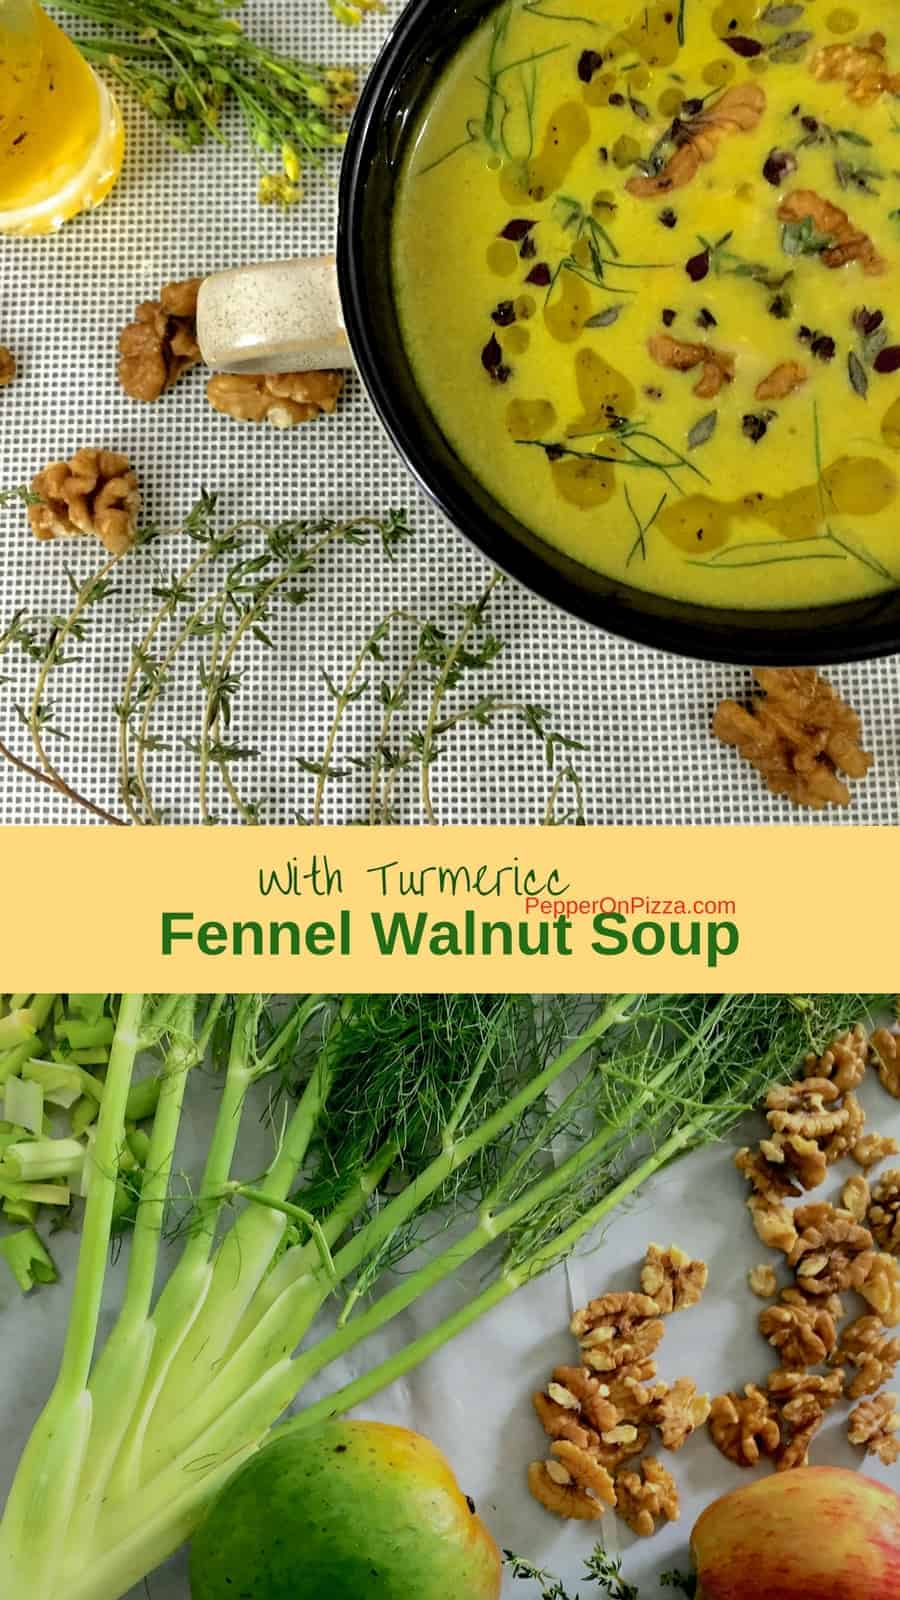 Healthy Turmeric Walnuts Fennel Soup. Creamy comforting soup garnished with edible Basil flowers, honey and toasted walnuts.